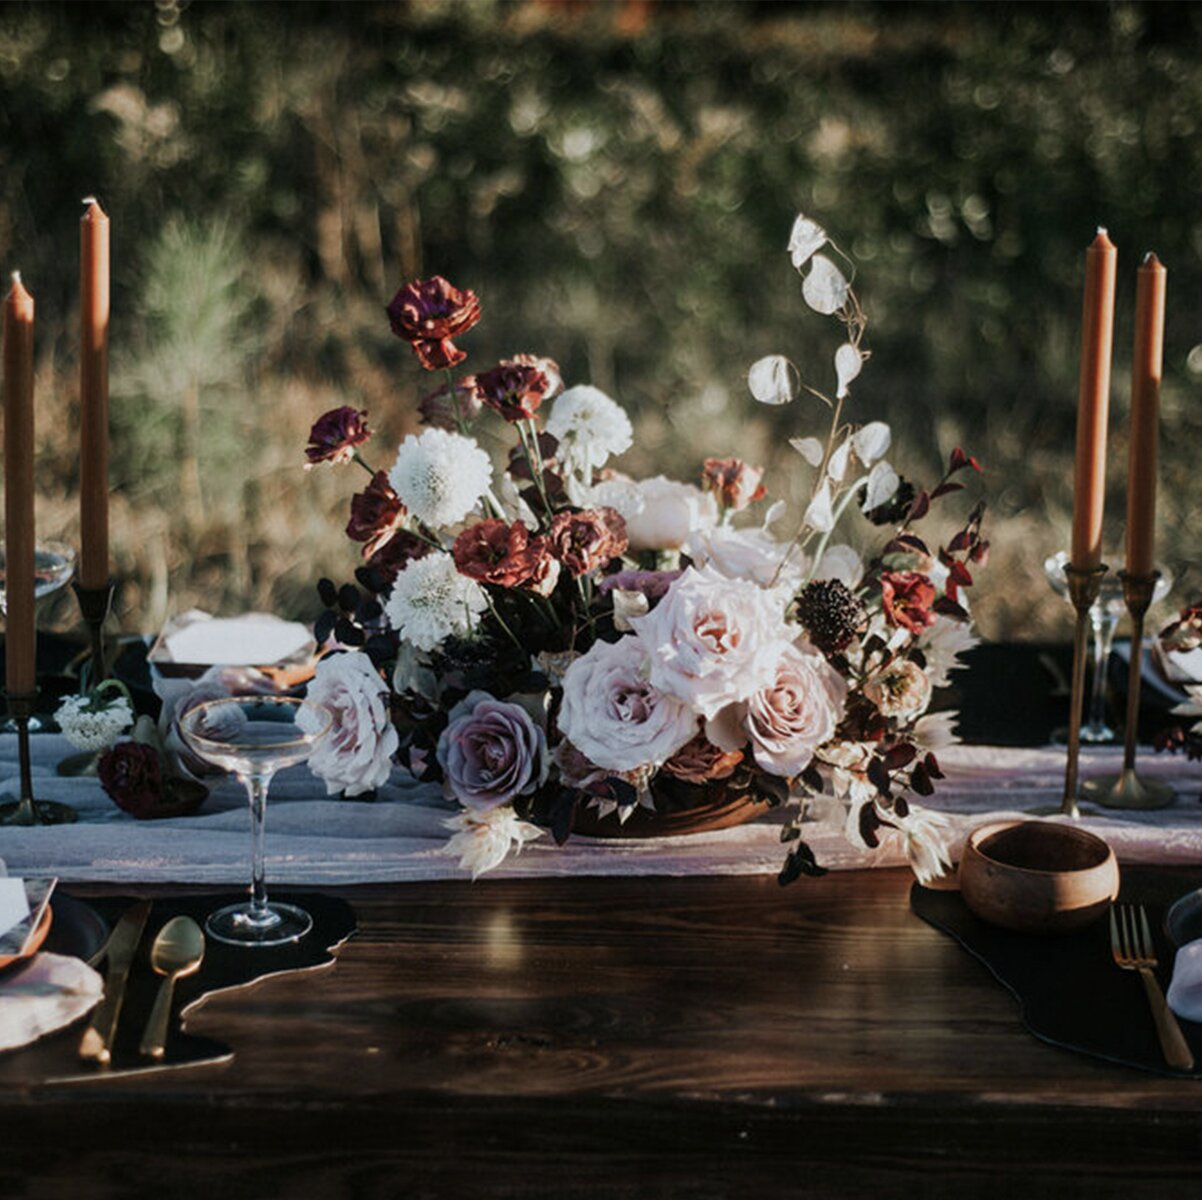 wedding-flowers-florist-sydney-reception-centrepiece-packages-prices-dried-boho-style